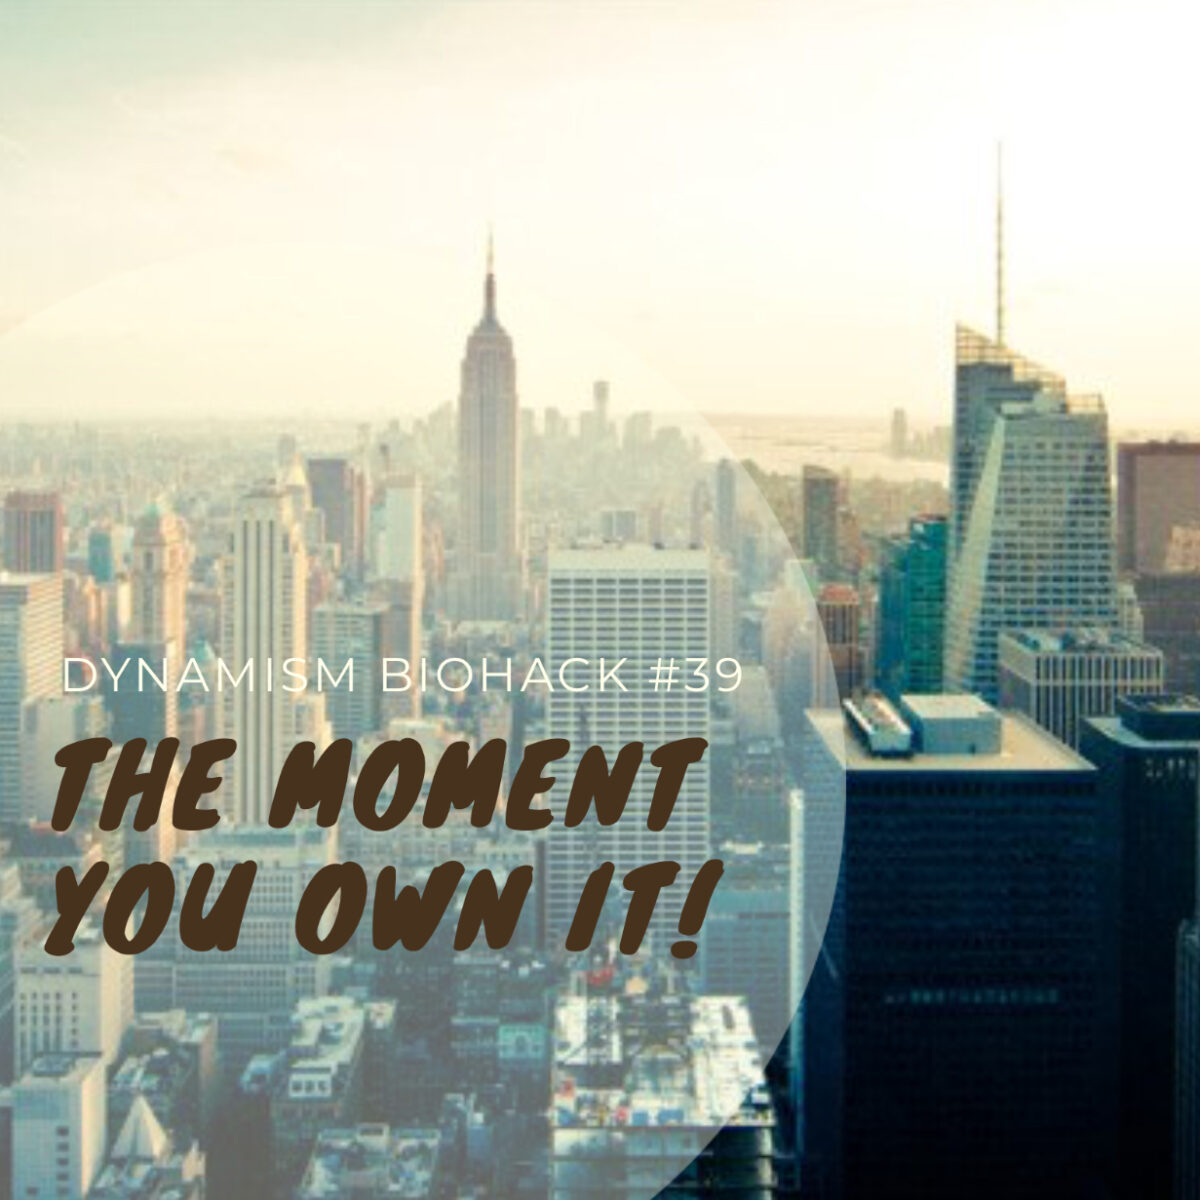 #39: The Moment You Own It